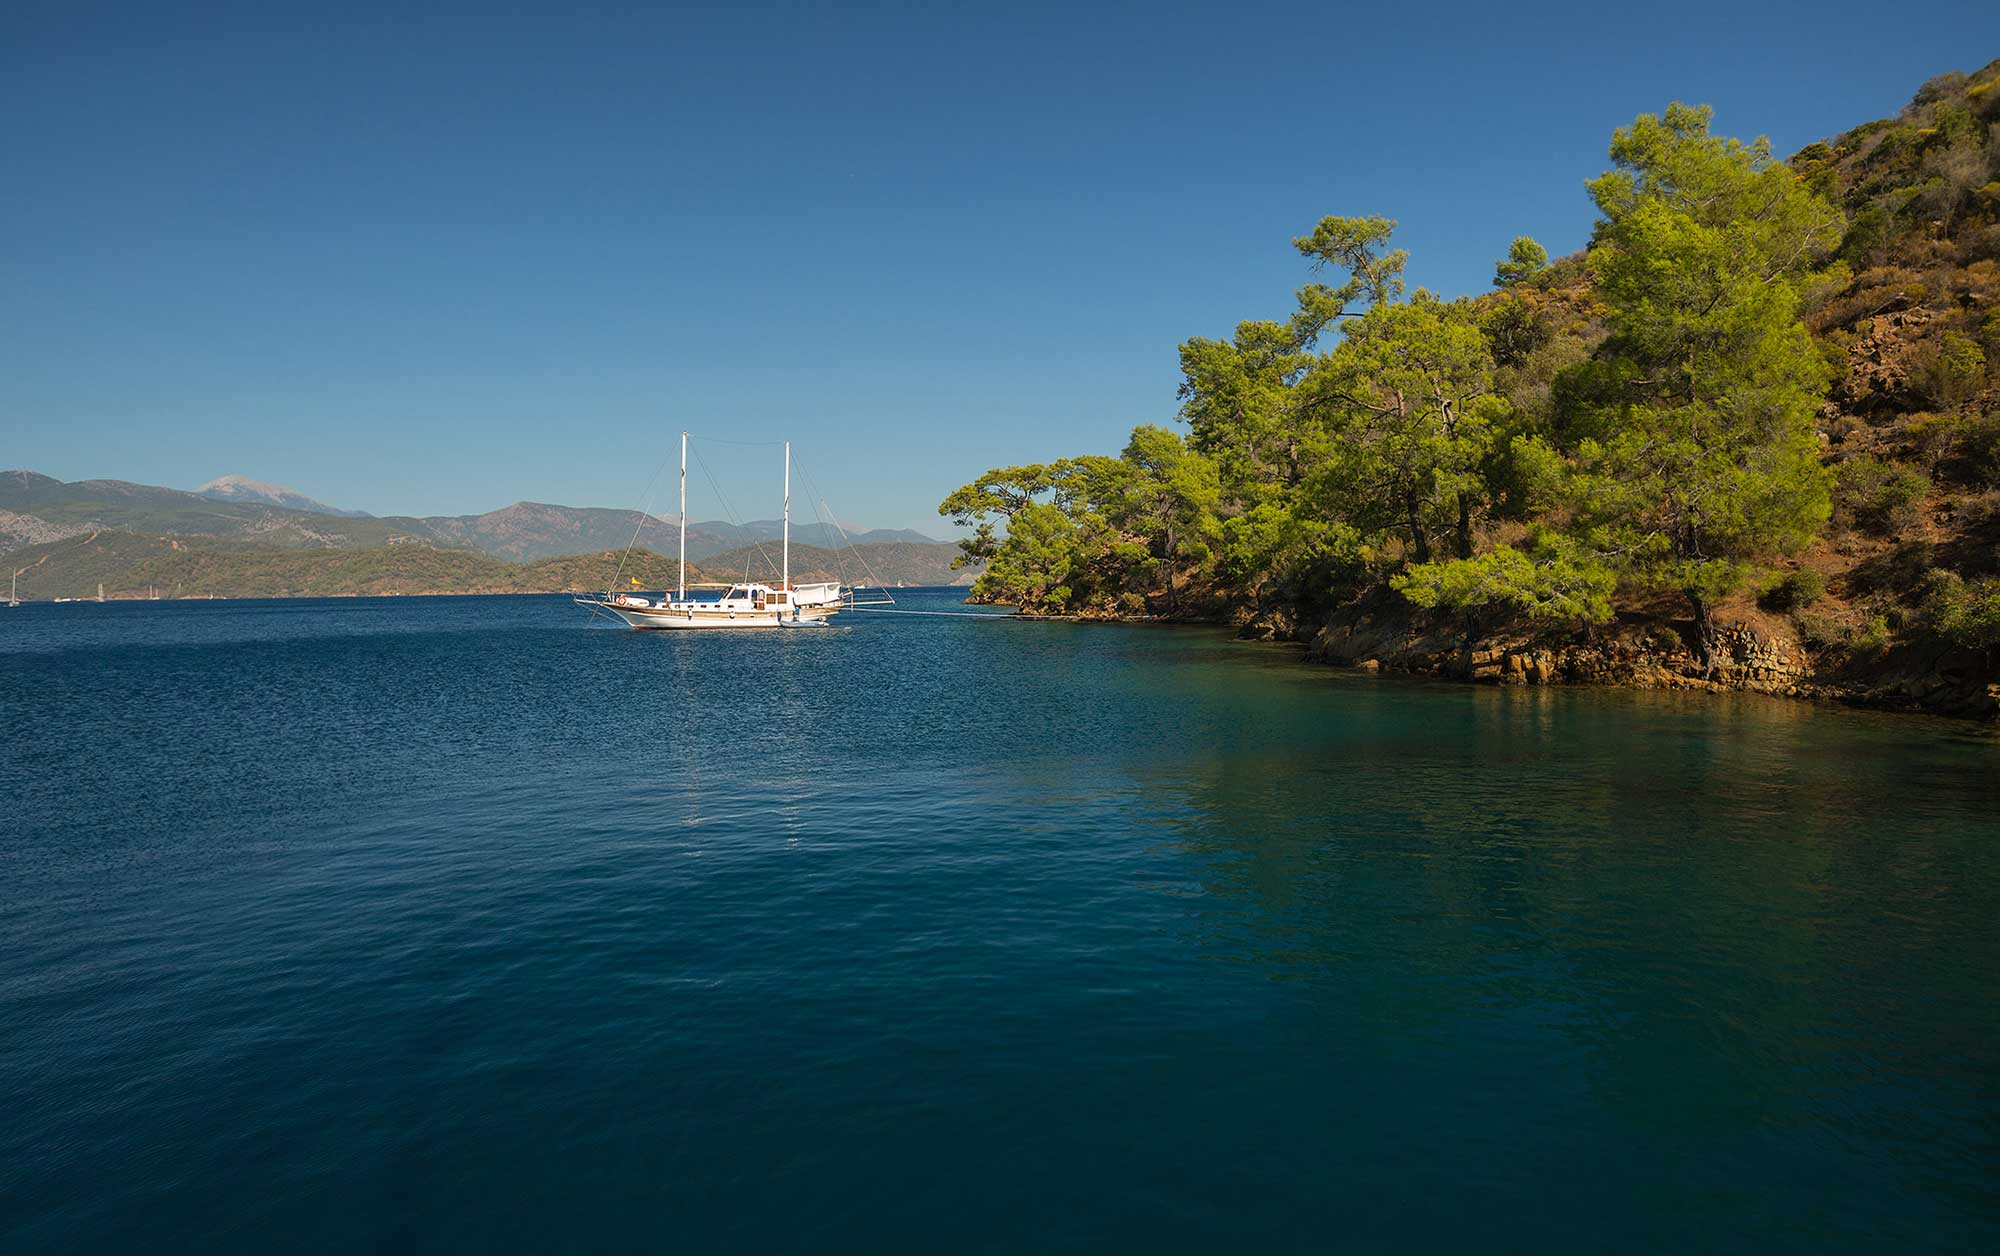 Bodrum Gökova Bodrum Air Conditioned Cabin Cruise - Blue Cruise,Light Tours Blue Cruise, Blue Cruise, Discount Tours,Cabin Rental 91